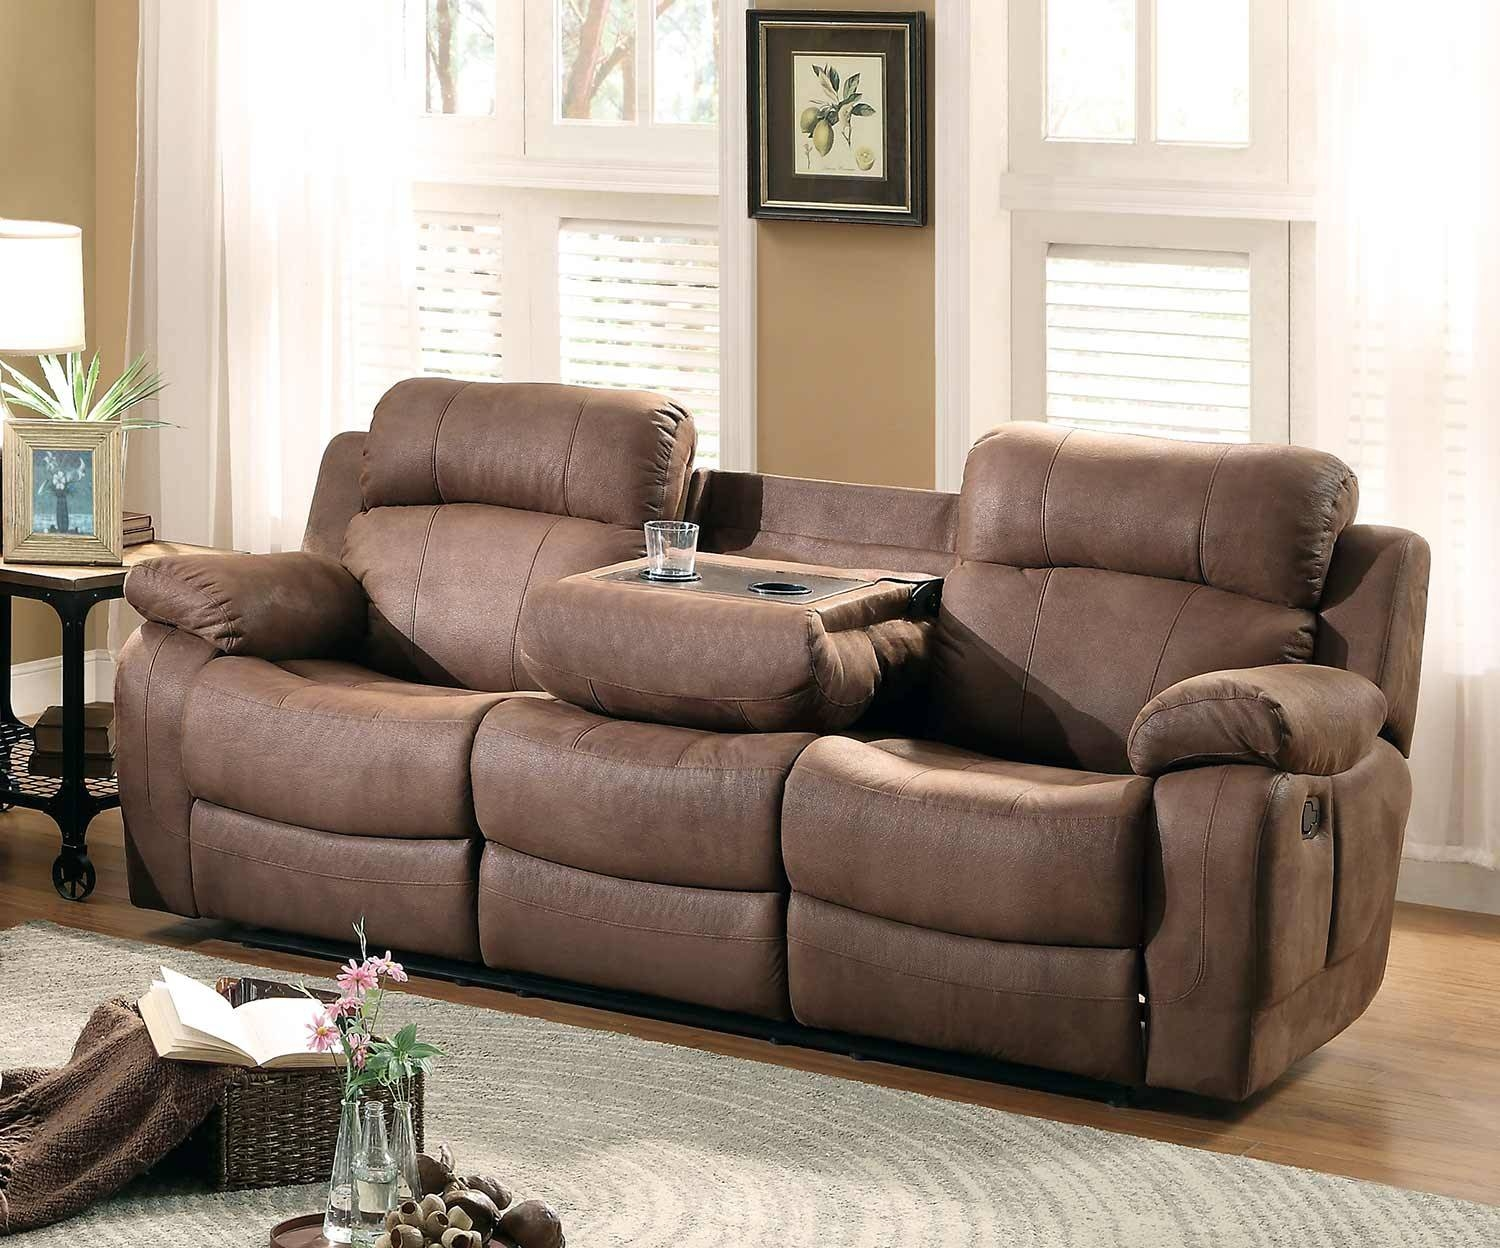 Homelegance Marille Double Reclining Sofa With Center Drop-Down throughout Sofas With Drink Holder (Image 6 of 15)